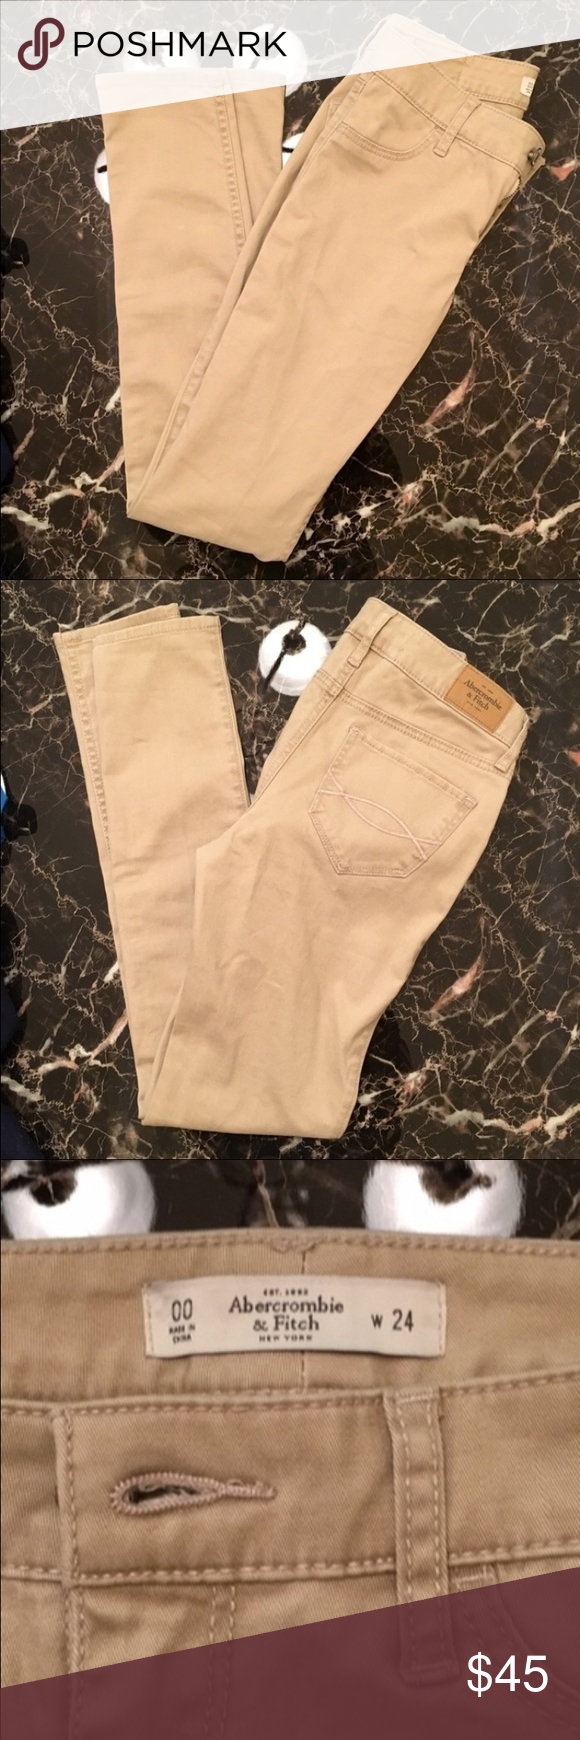 Abercrombie & Fitch Khaki Jeggings Never worn, runs a little big Abercrombie & Fitch Jeans